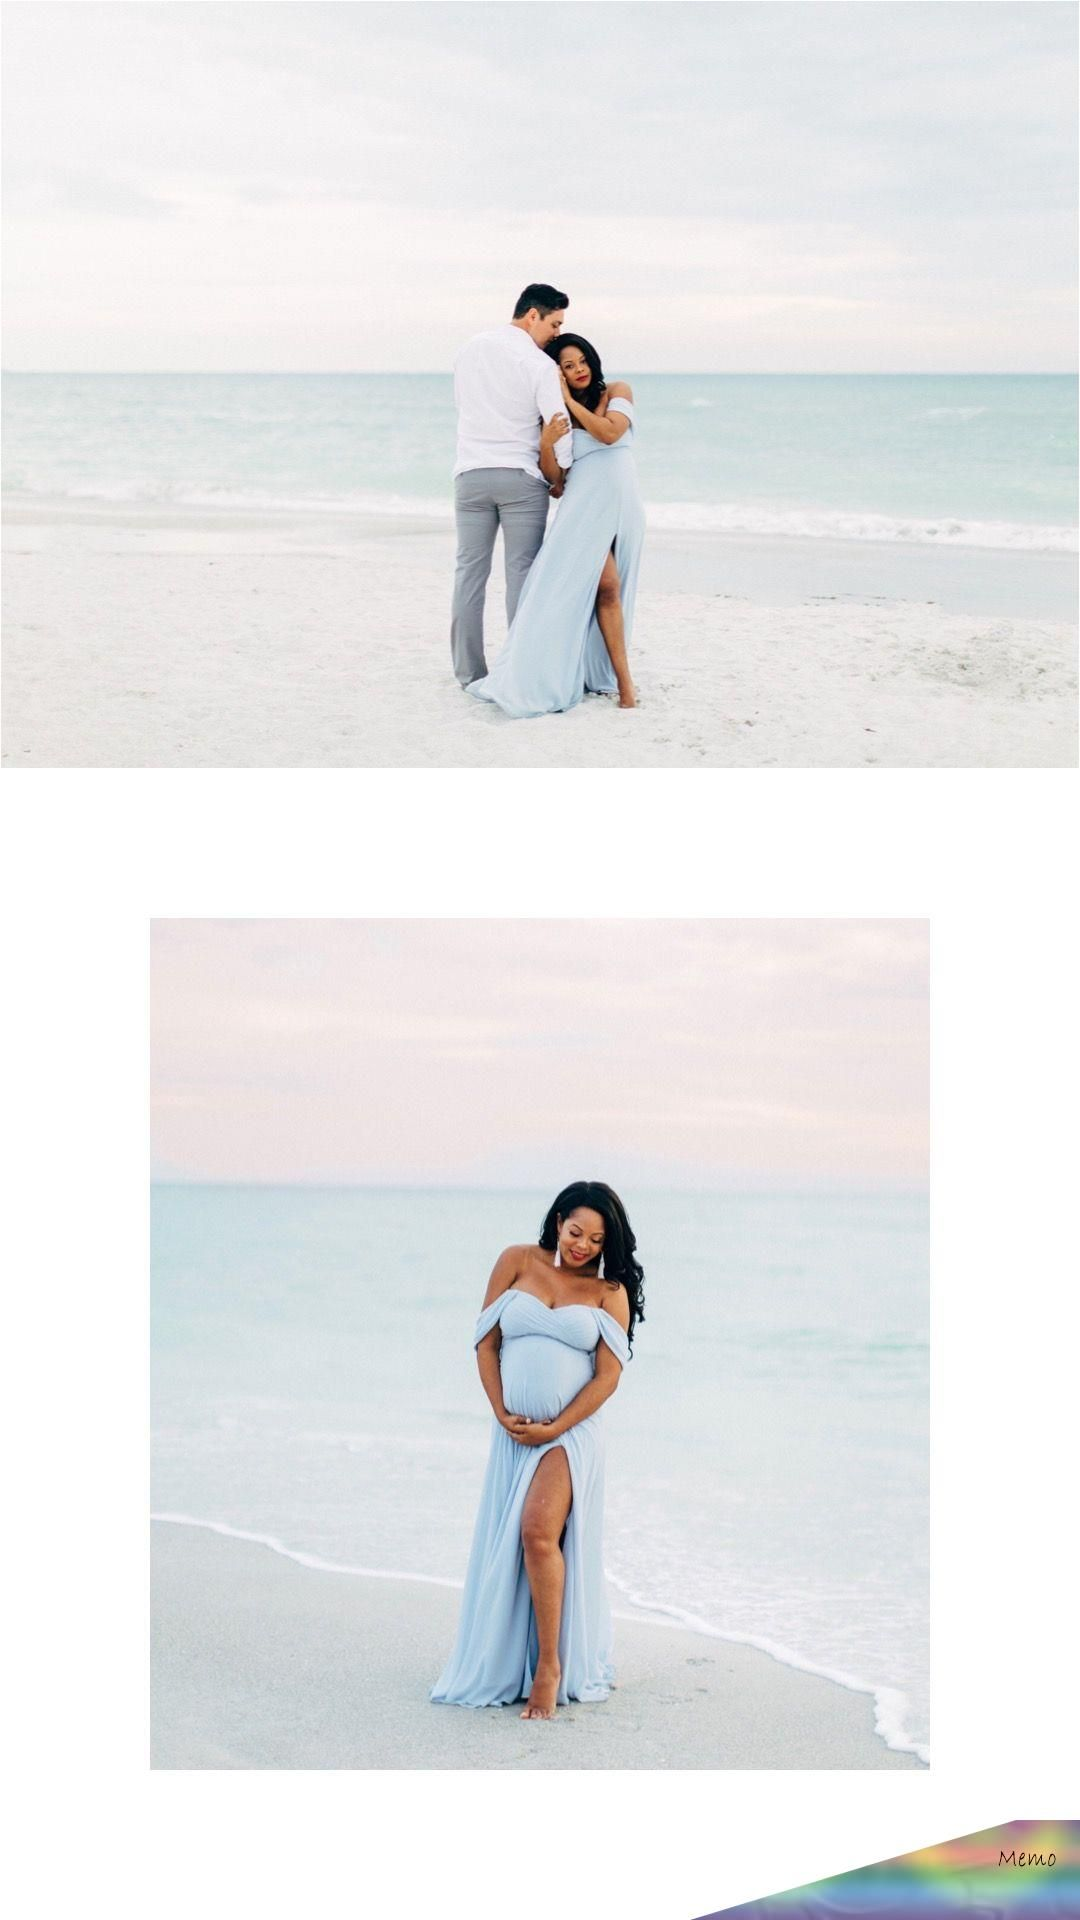 Pin by Mary Santiago on Baby ️ in 2020 | Maternity shoot beach, Maternity photography beach ...